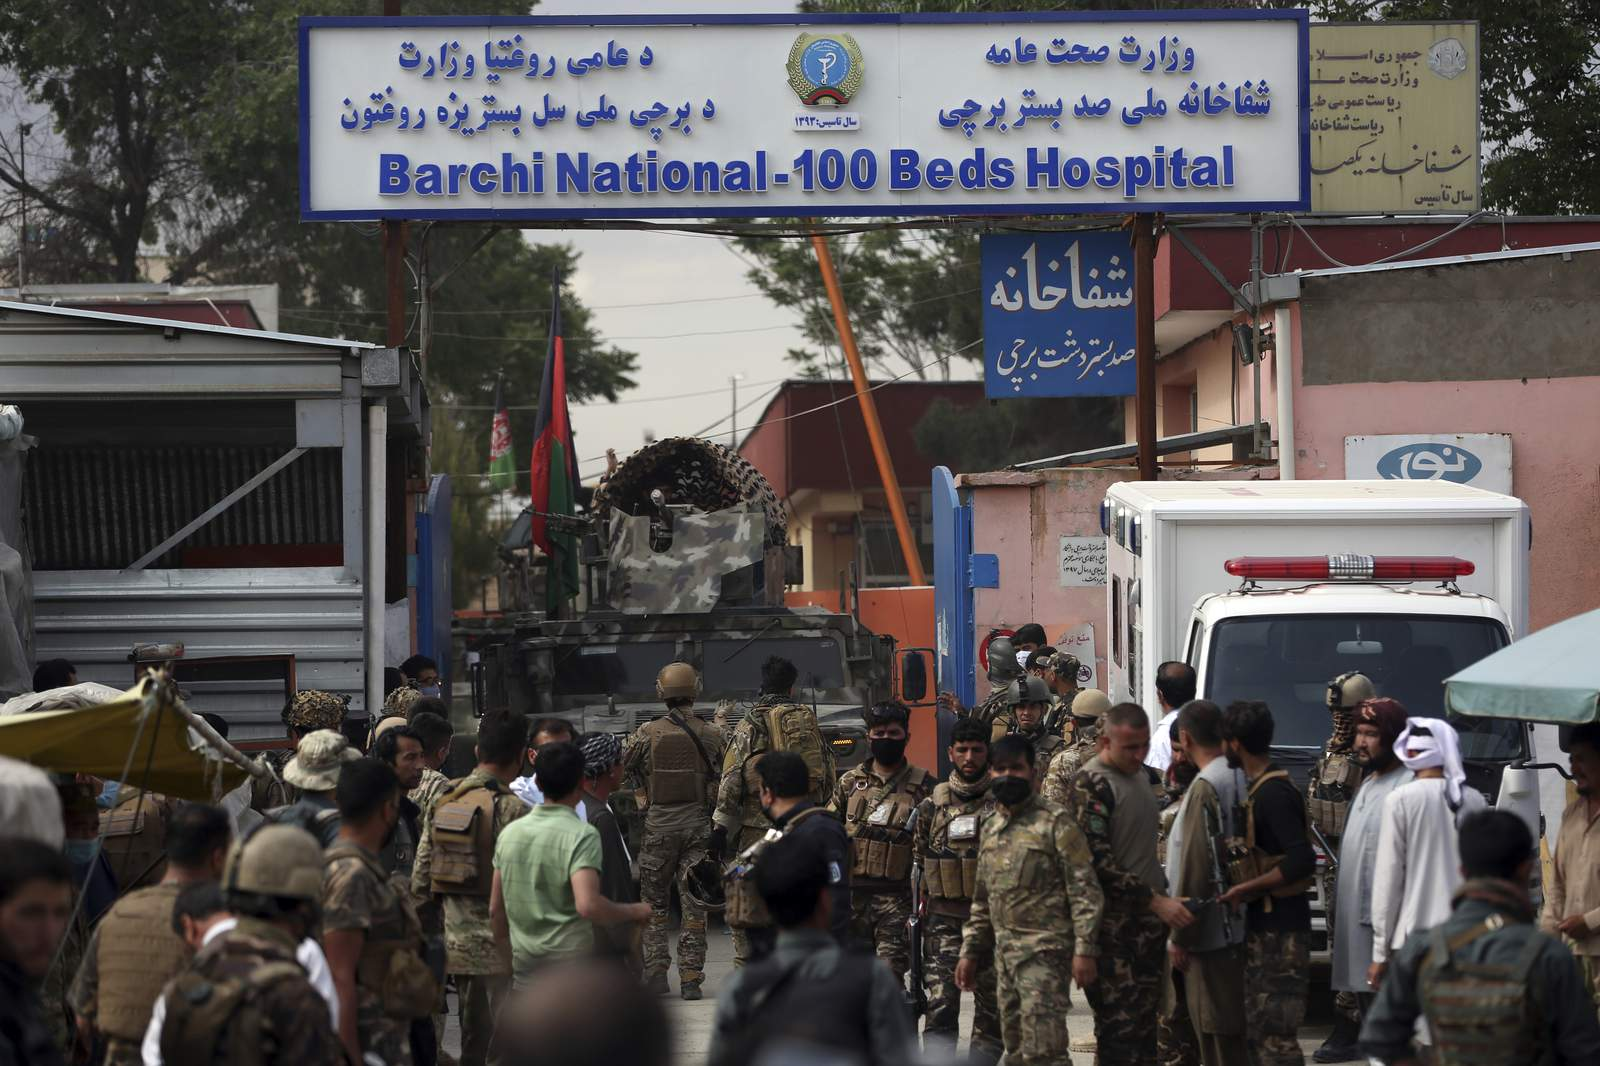 Afghan healthcare personnel were deliberately attacked